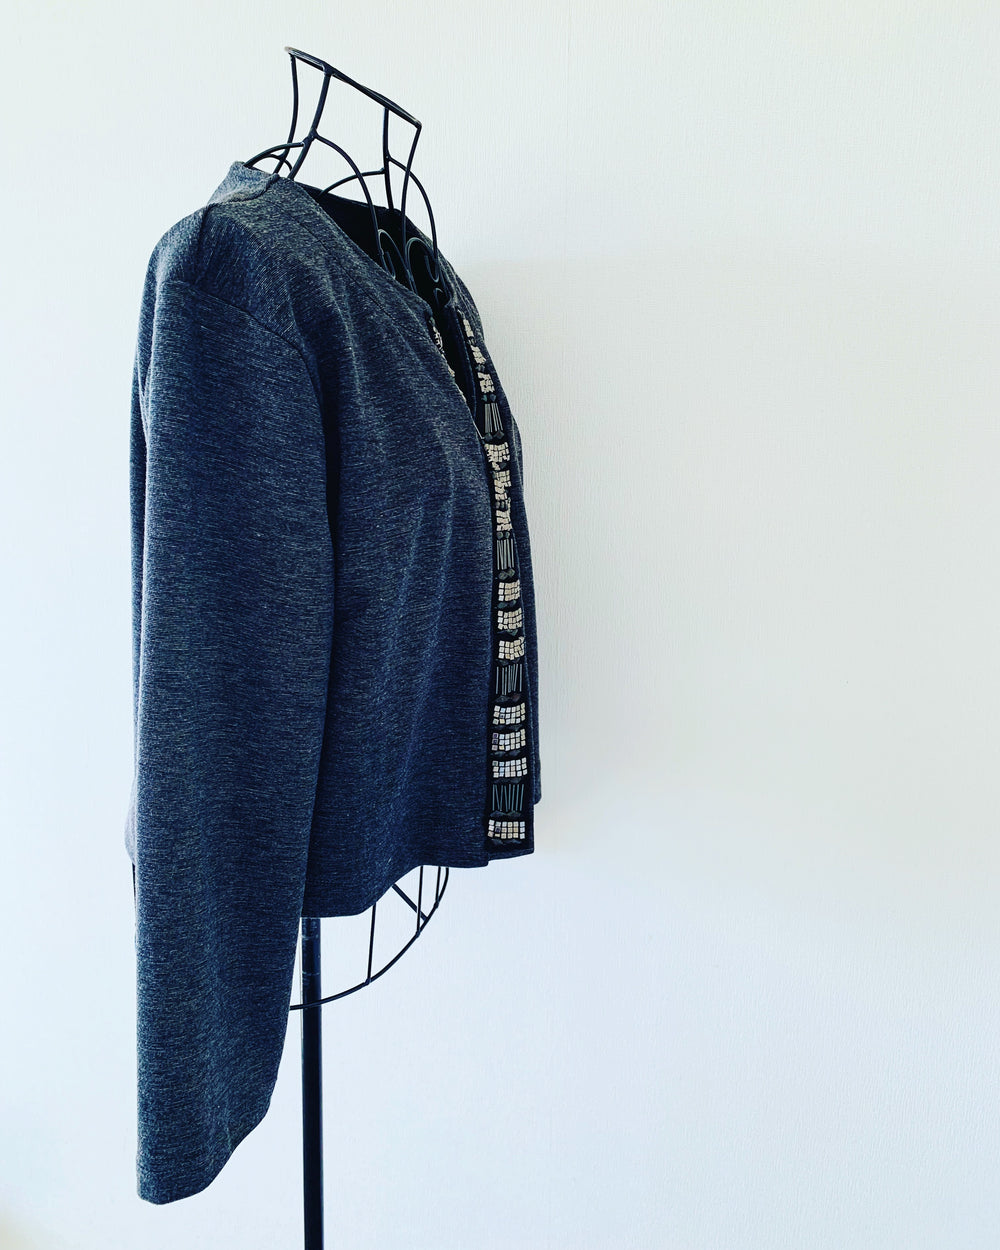 Preloved // R/H Cropped Grey Jacket With Bead & Stud Detailing // Size 14 (Will Suit Sizes 14-18)